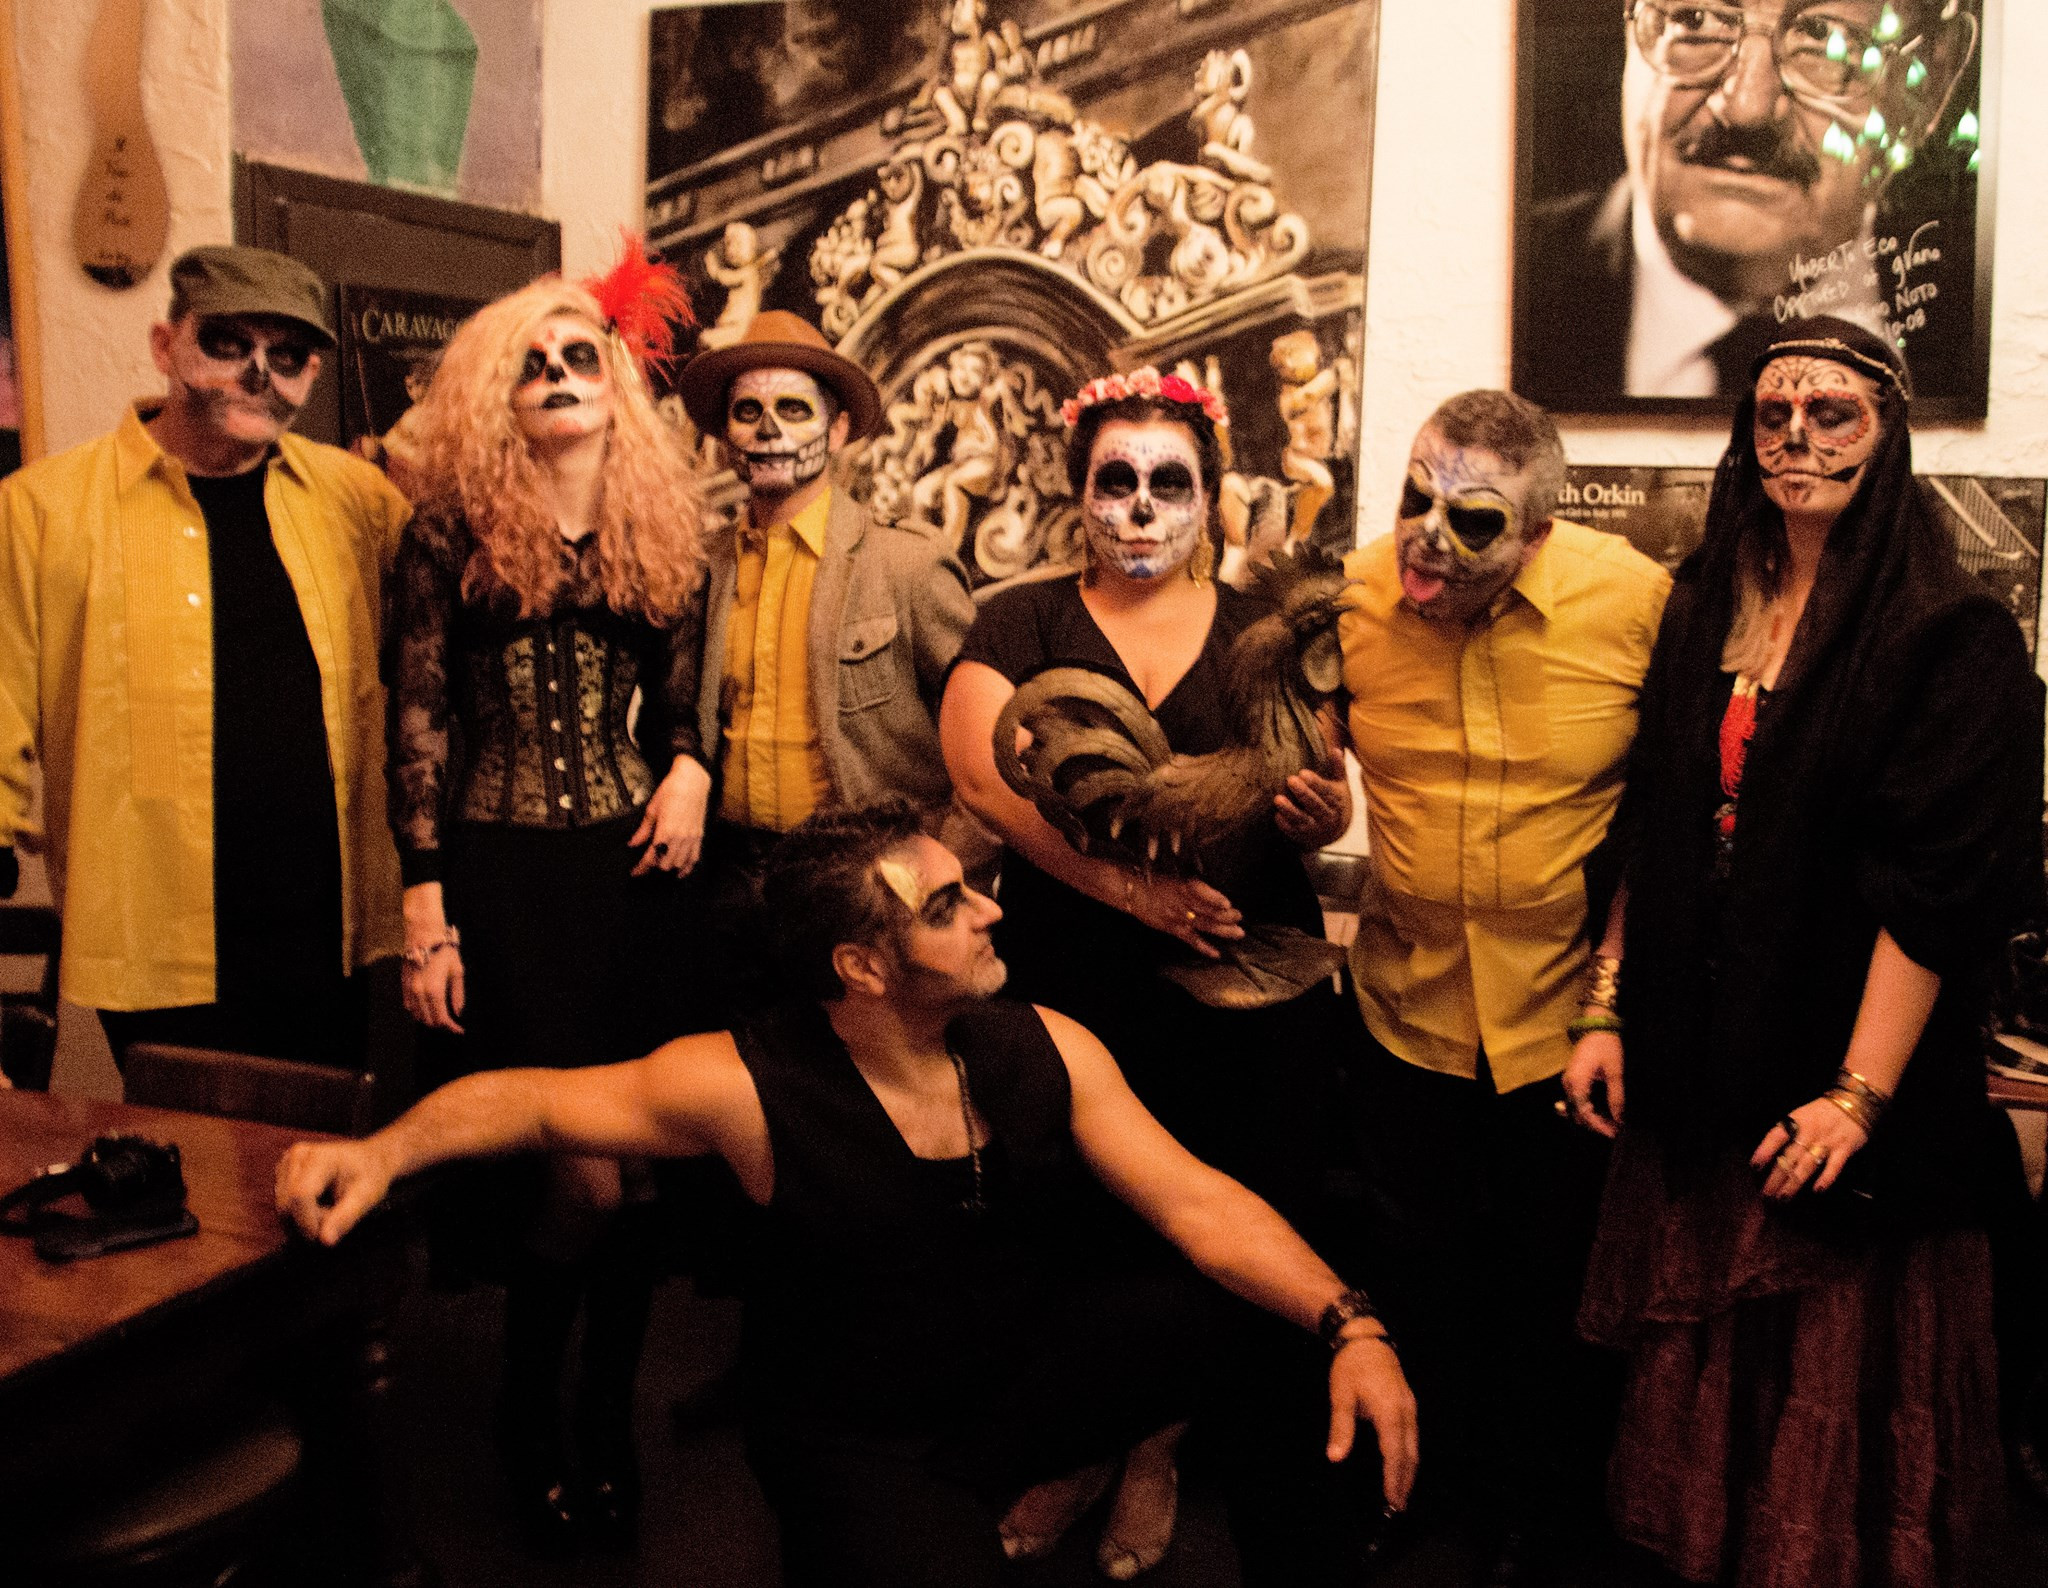 The day of the Dead performance at Grano, Toronto.